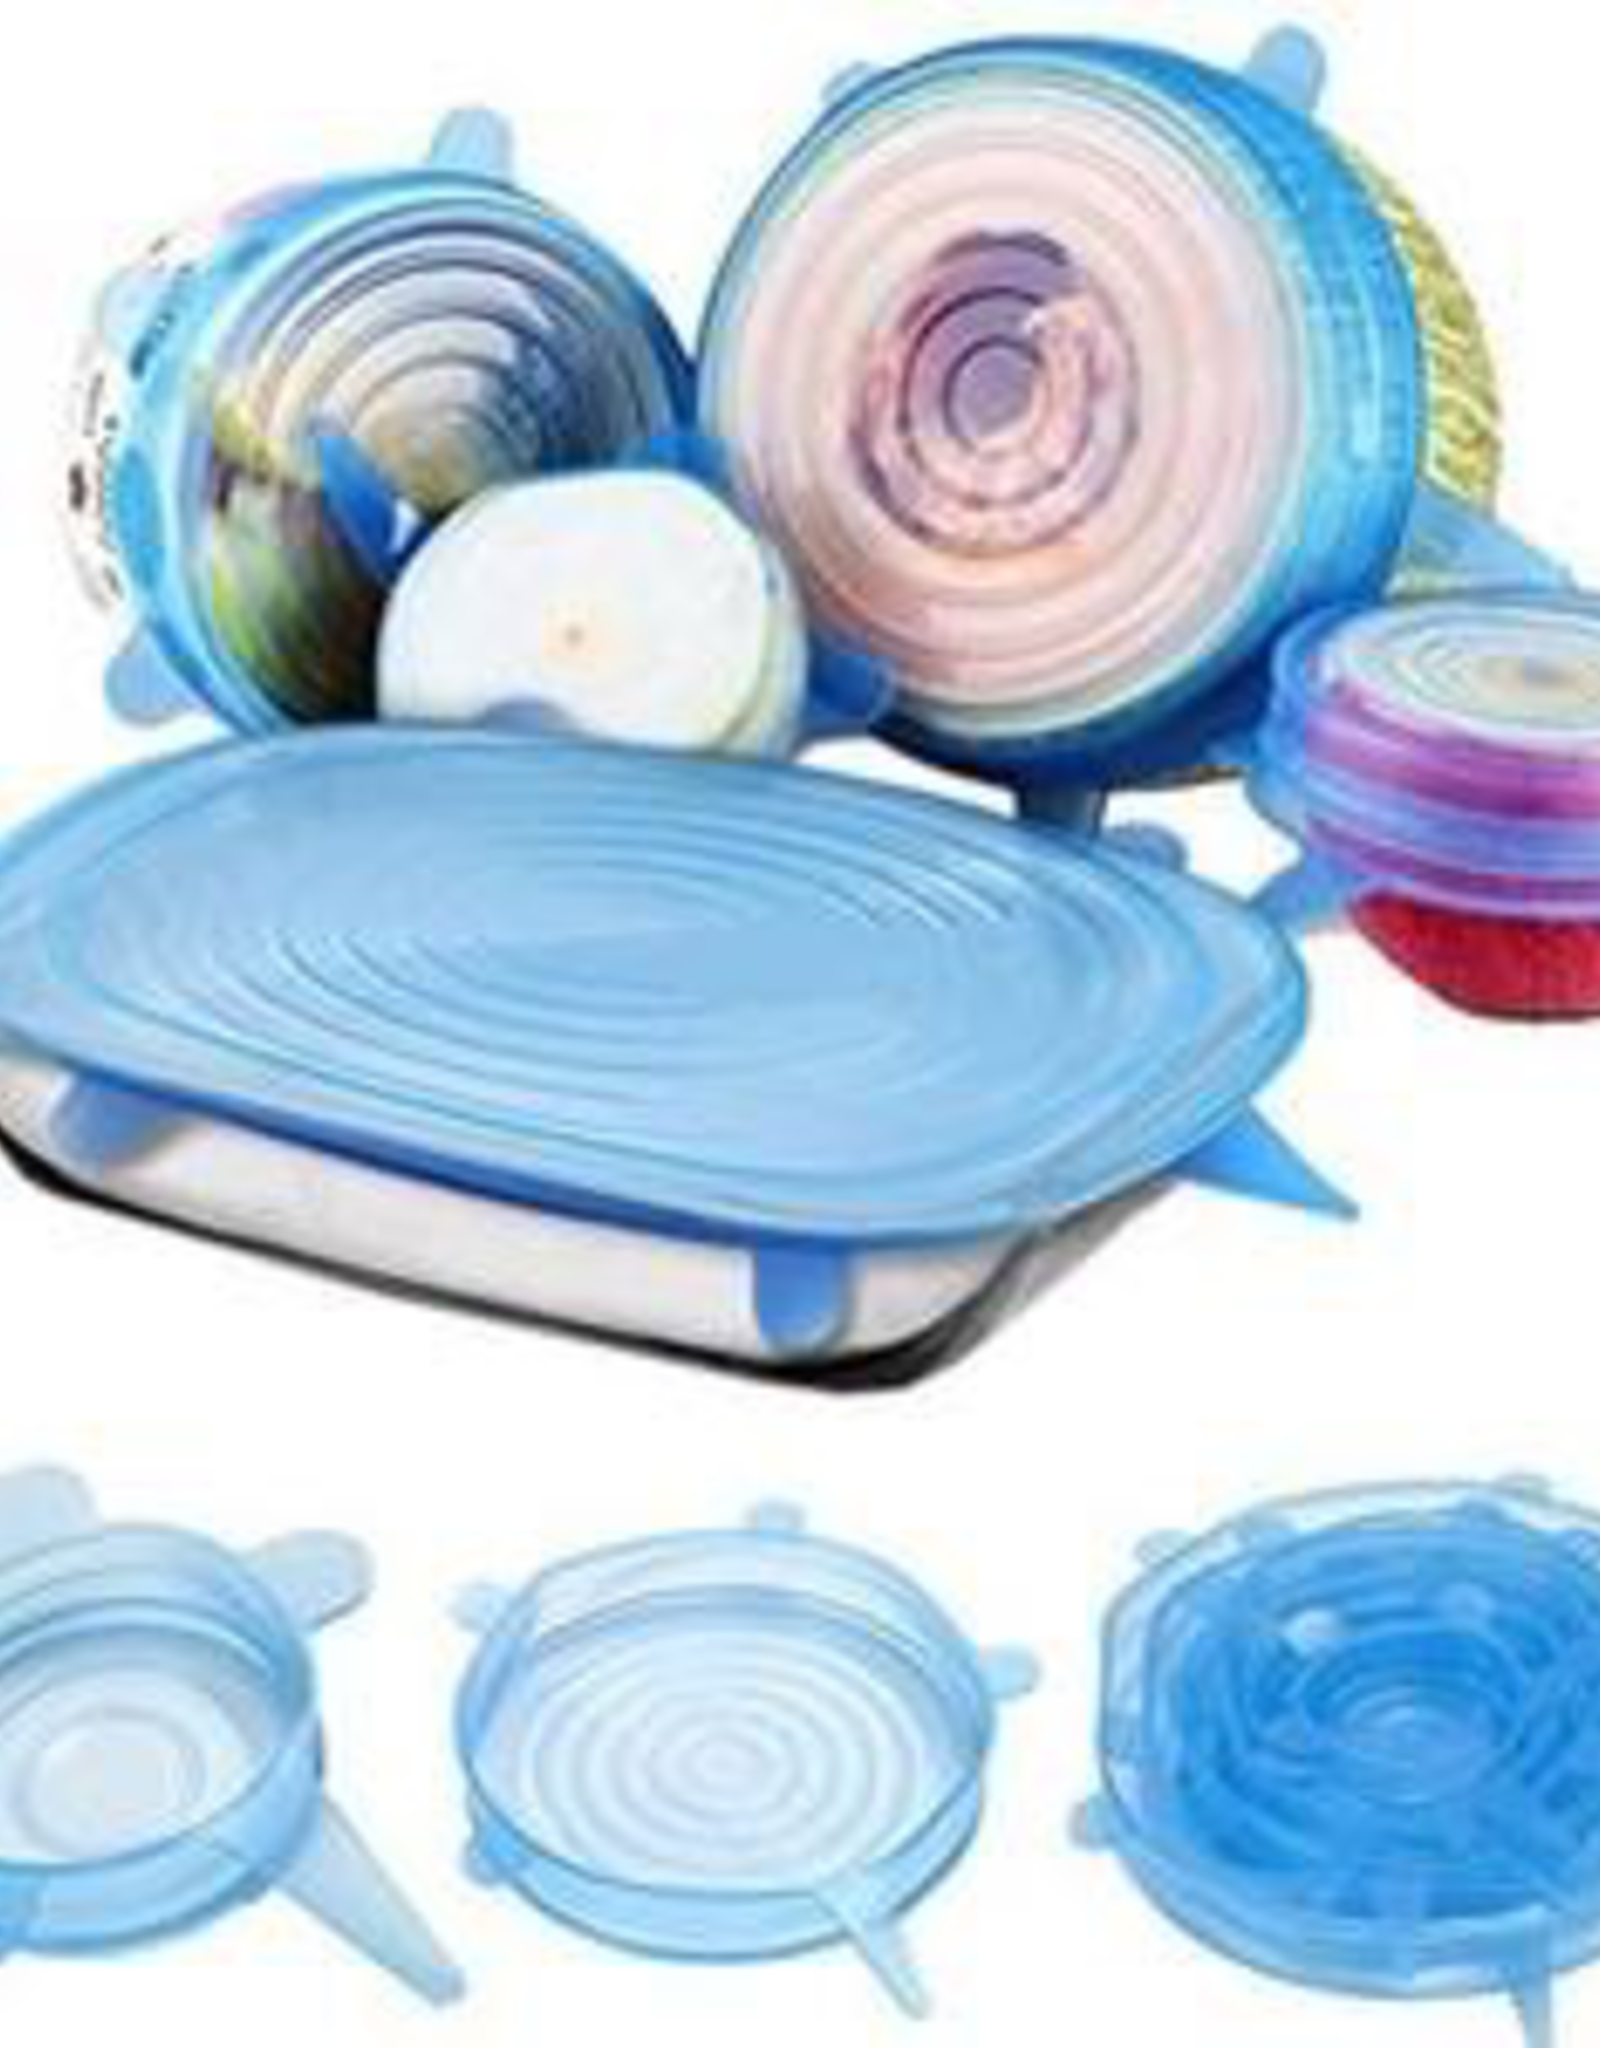 Food Storage Lid, Silicone, Stretch Wrap, Set of 6